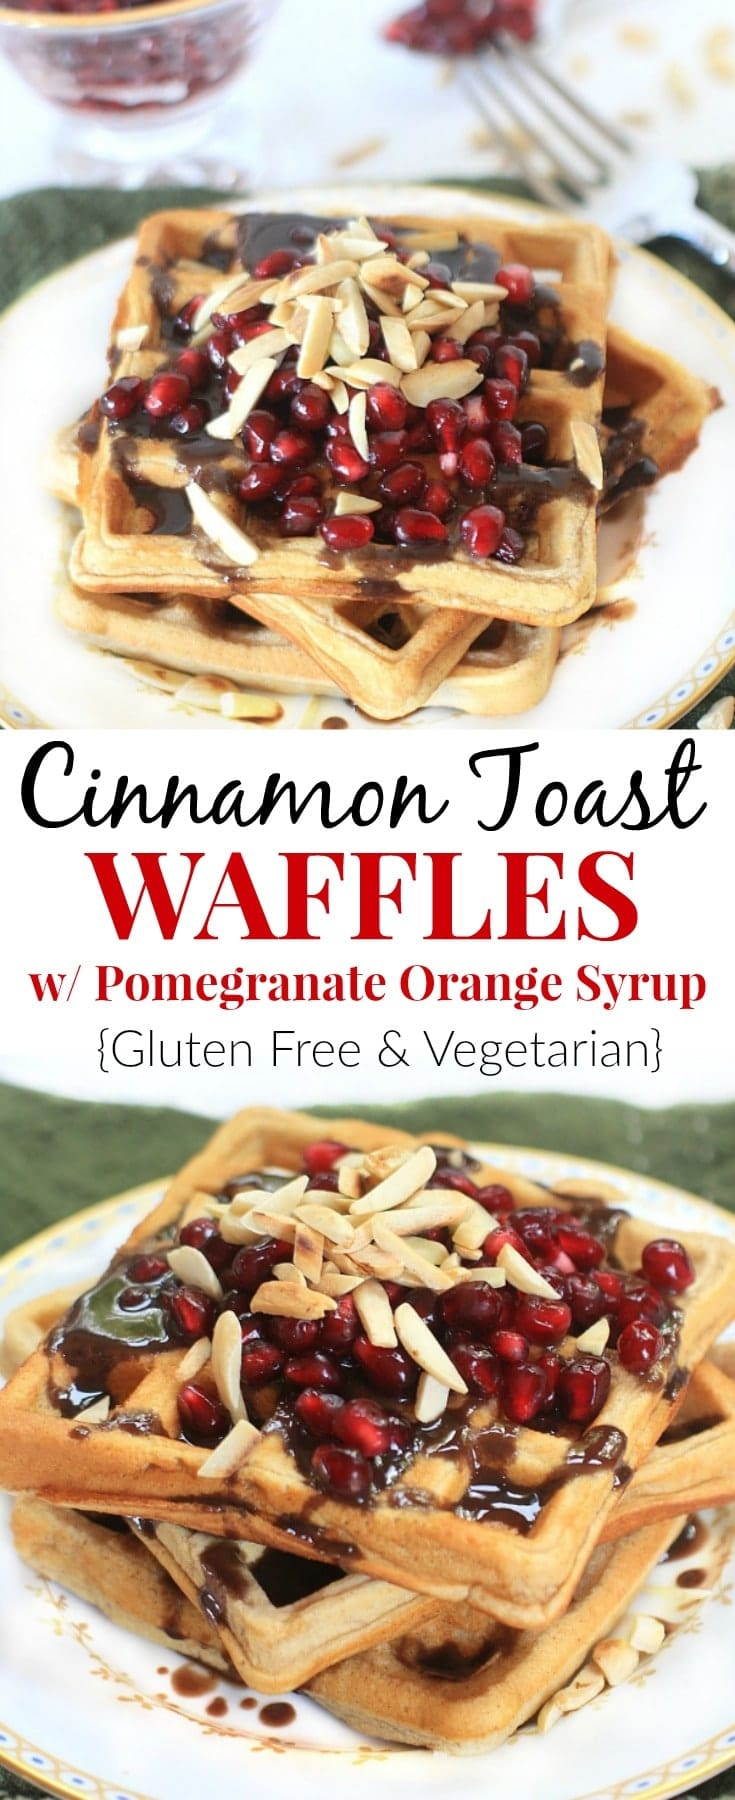 These Cinnamon Toast Gluten Free Waffles with Pomegranate Orange Syrup and Toasted Almonds are a festive and delicious holiday breakfast treat! #Sponsored #GlutenFree #Vegetarian #pomegranates #waffles